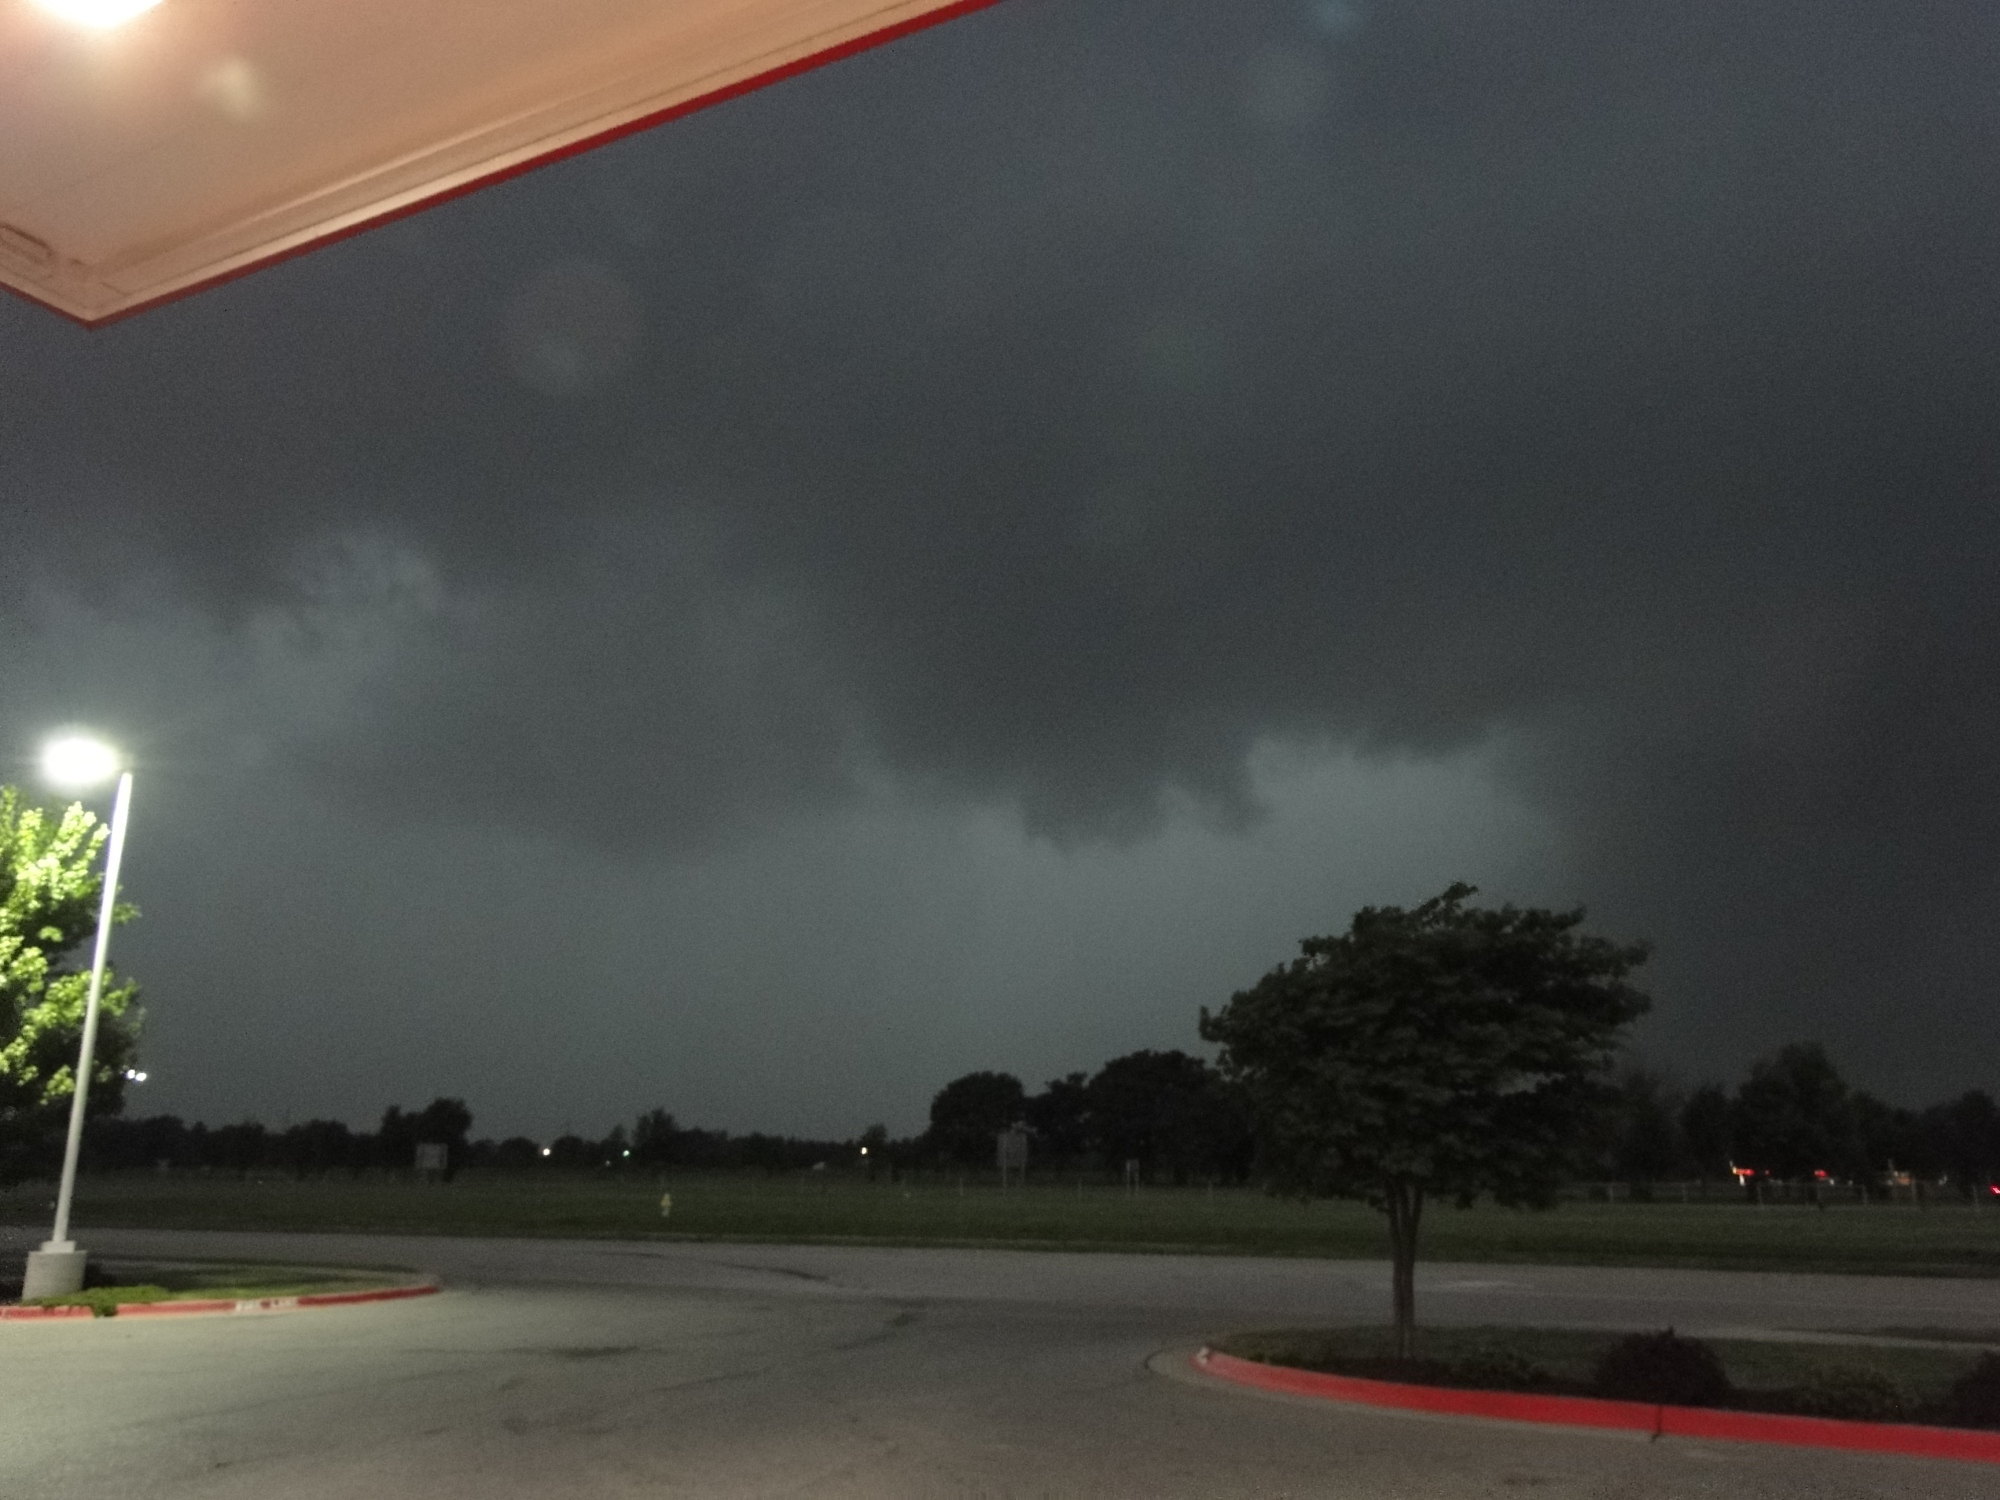 Possible Wall Cloud yesterday evening May 20, 2013 around 7-7:15pm. Interstate 540 and Elm Springs Road Exit.